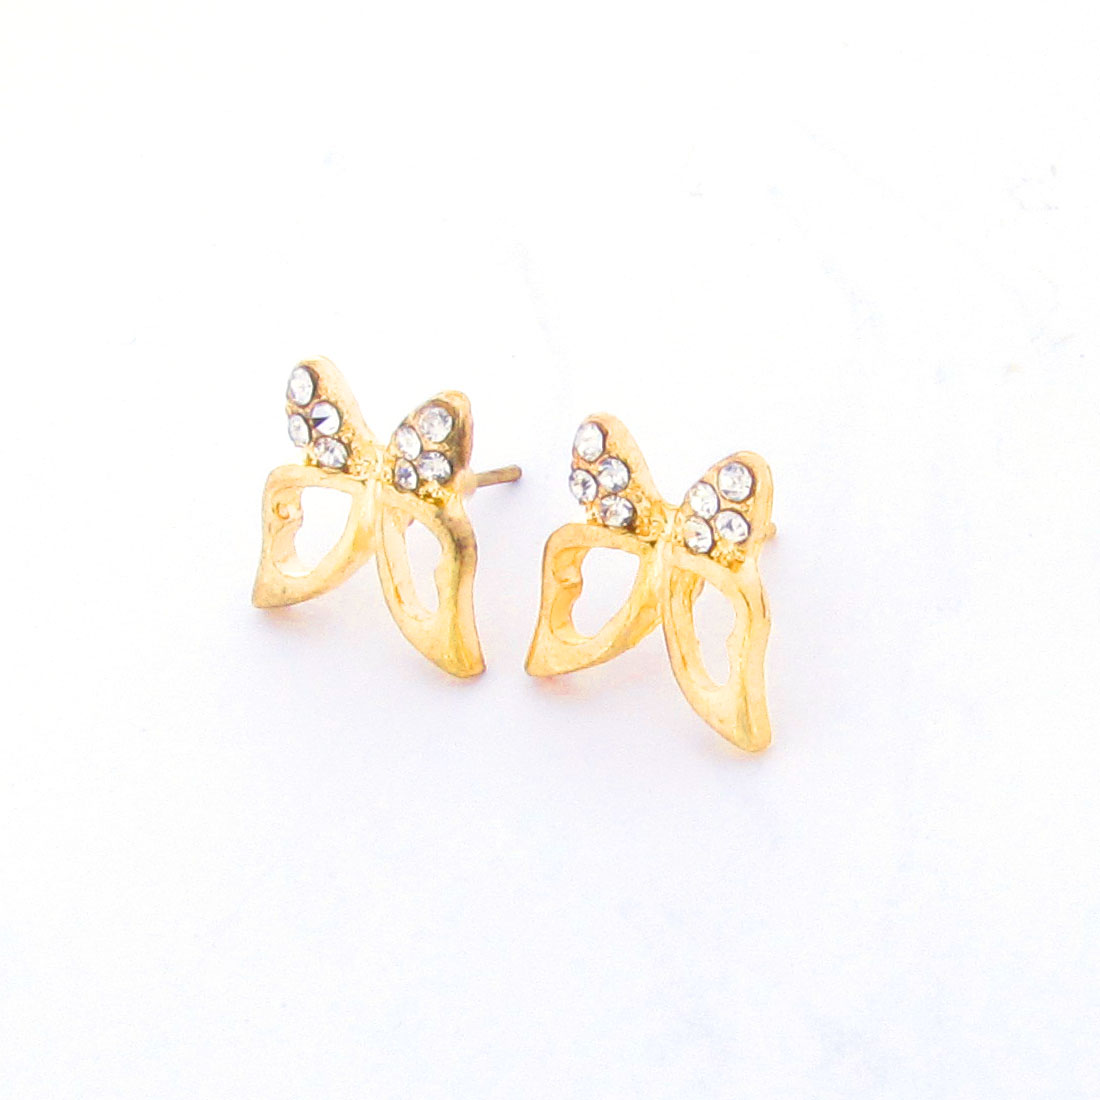 Pair Rhinestones Butterfly Shaped Ornament Stud Earrings Gold Tone for Women